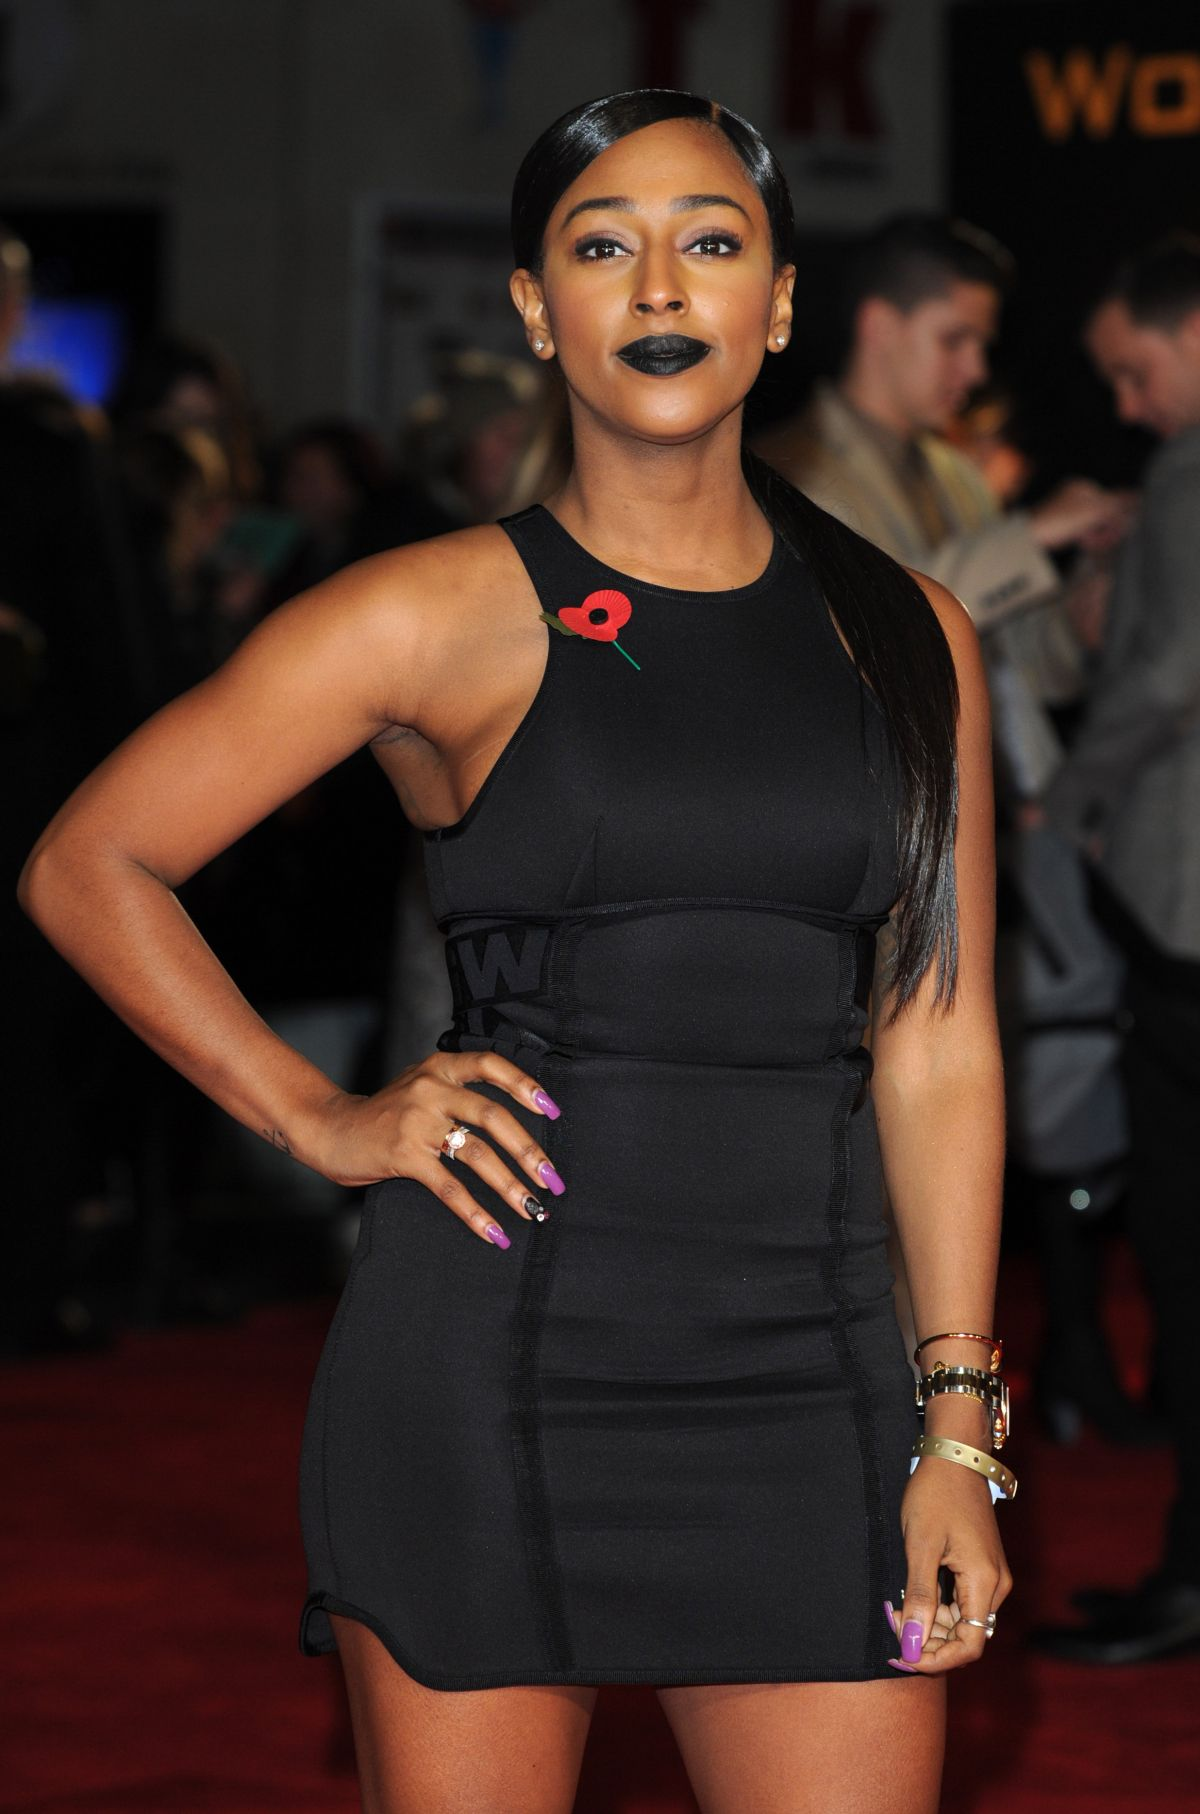 ALEXANDRA BURKE at The Hunger Games: Mockingjay Part 1 Premiere in London